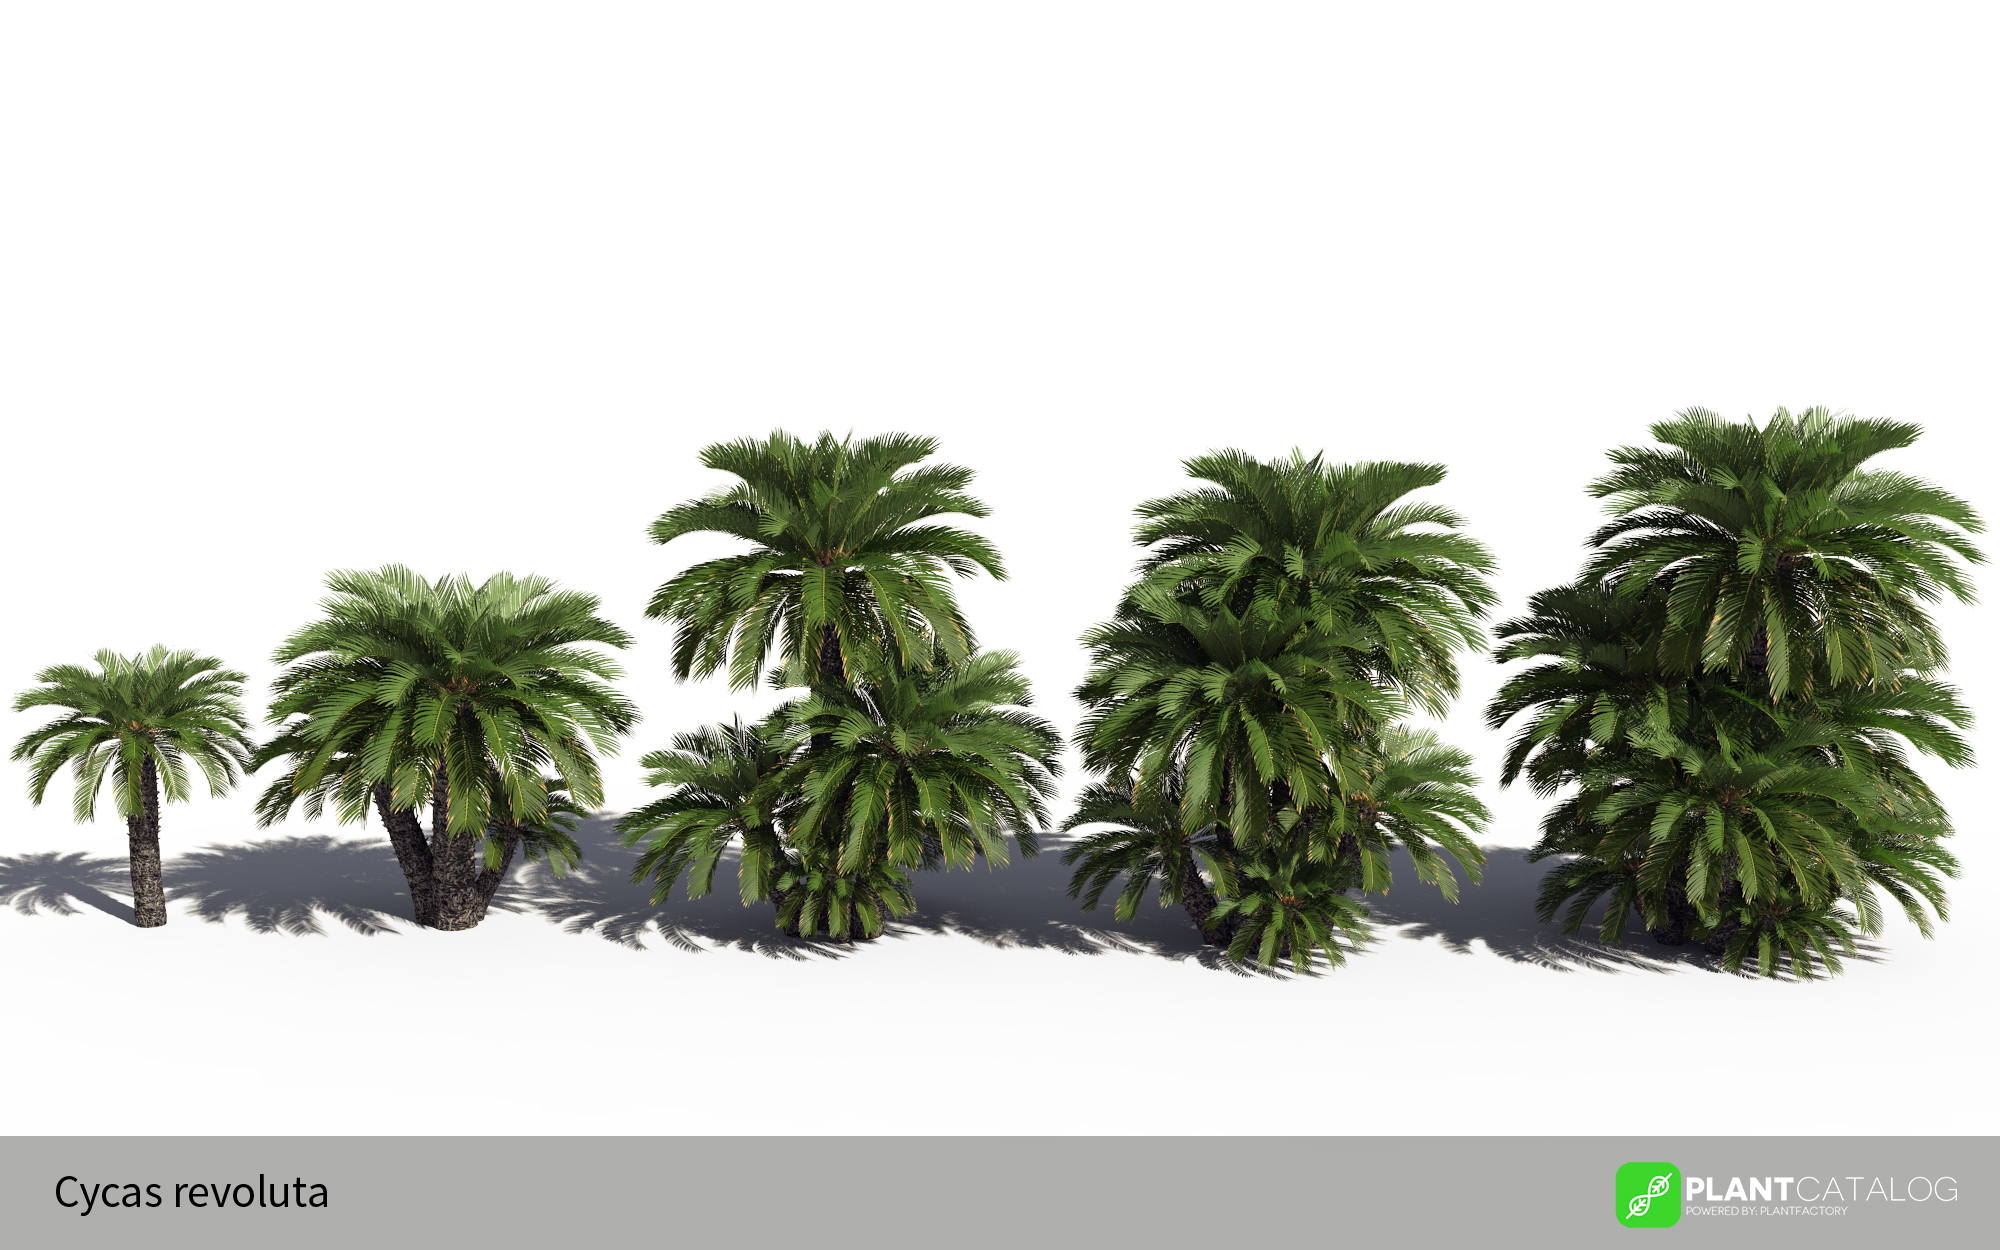 3D model of the Japanese sago palm - Cycas revoluta - from the PlantCatalog, rendered in VUE